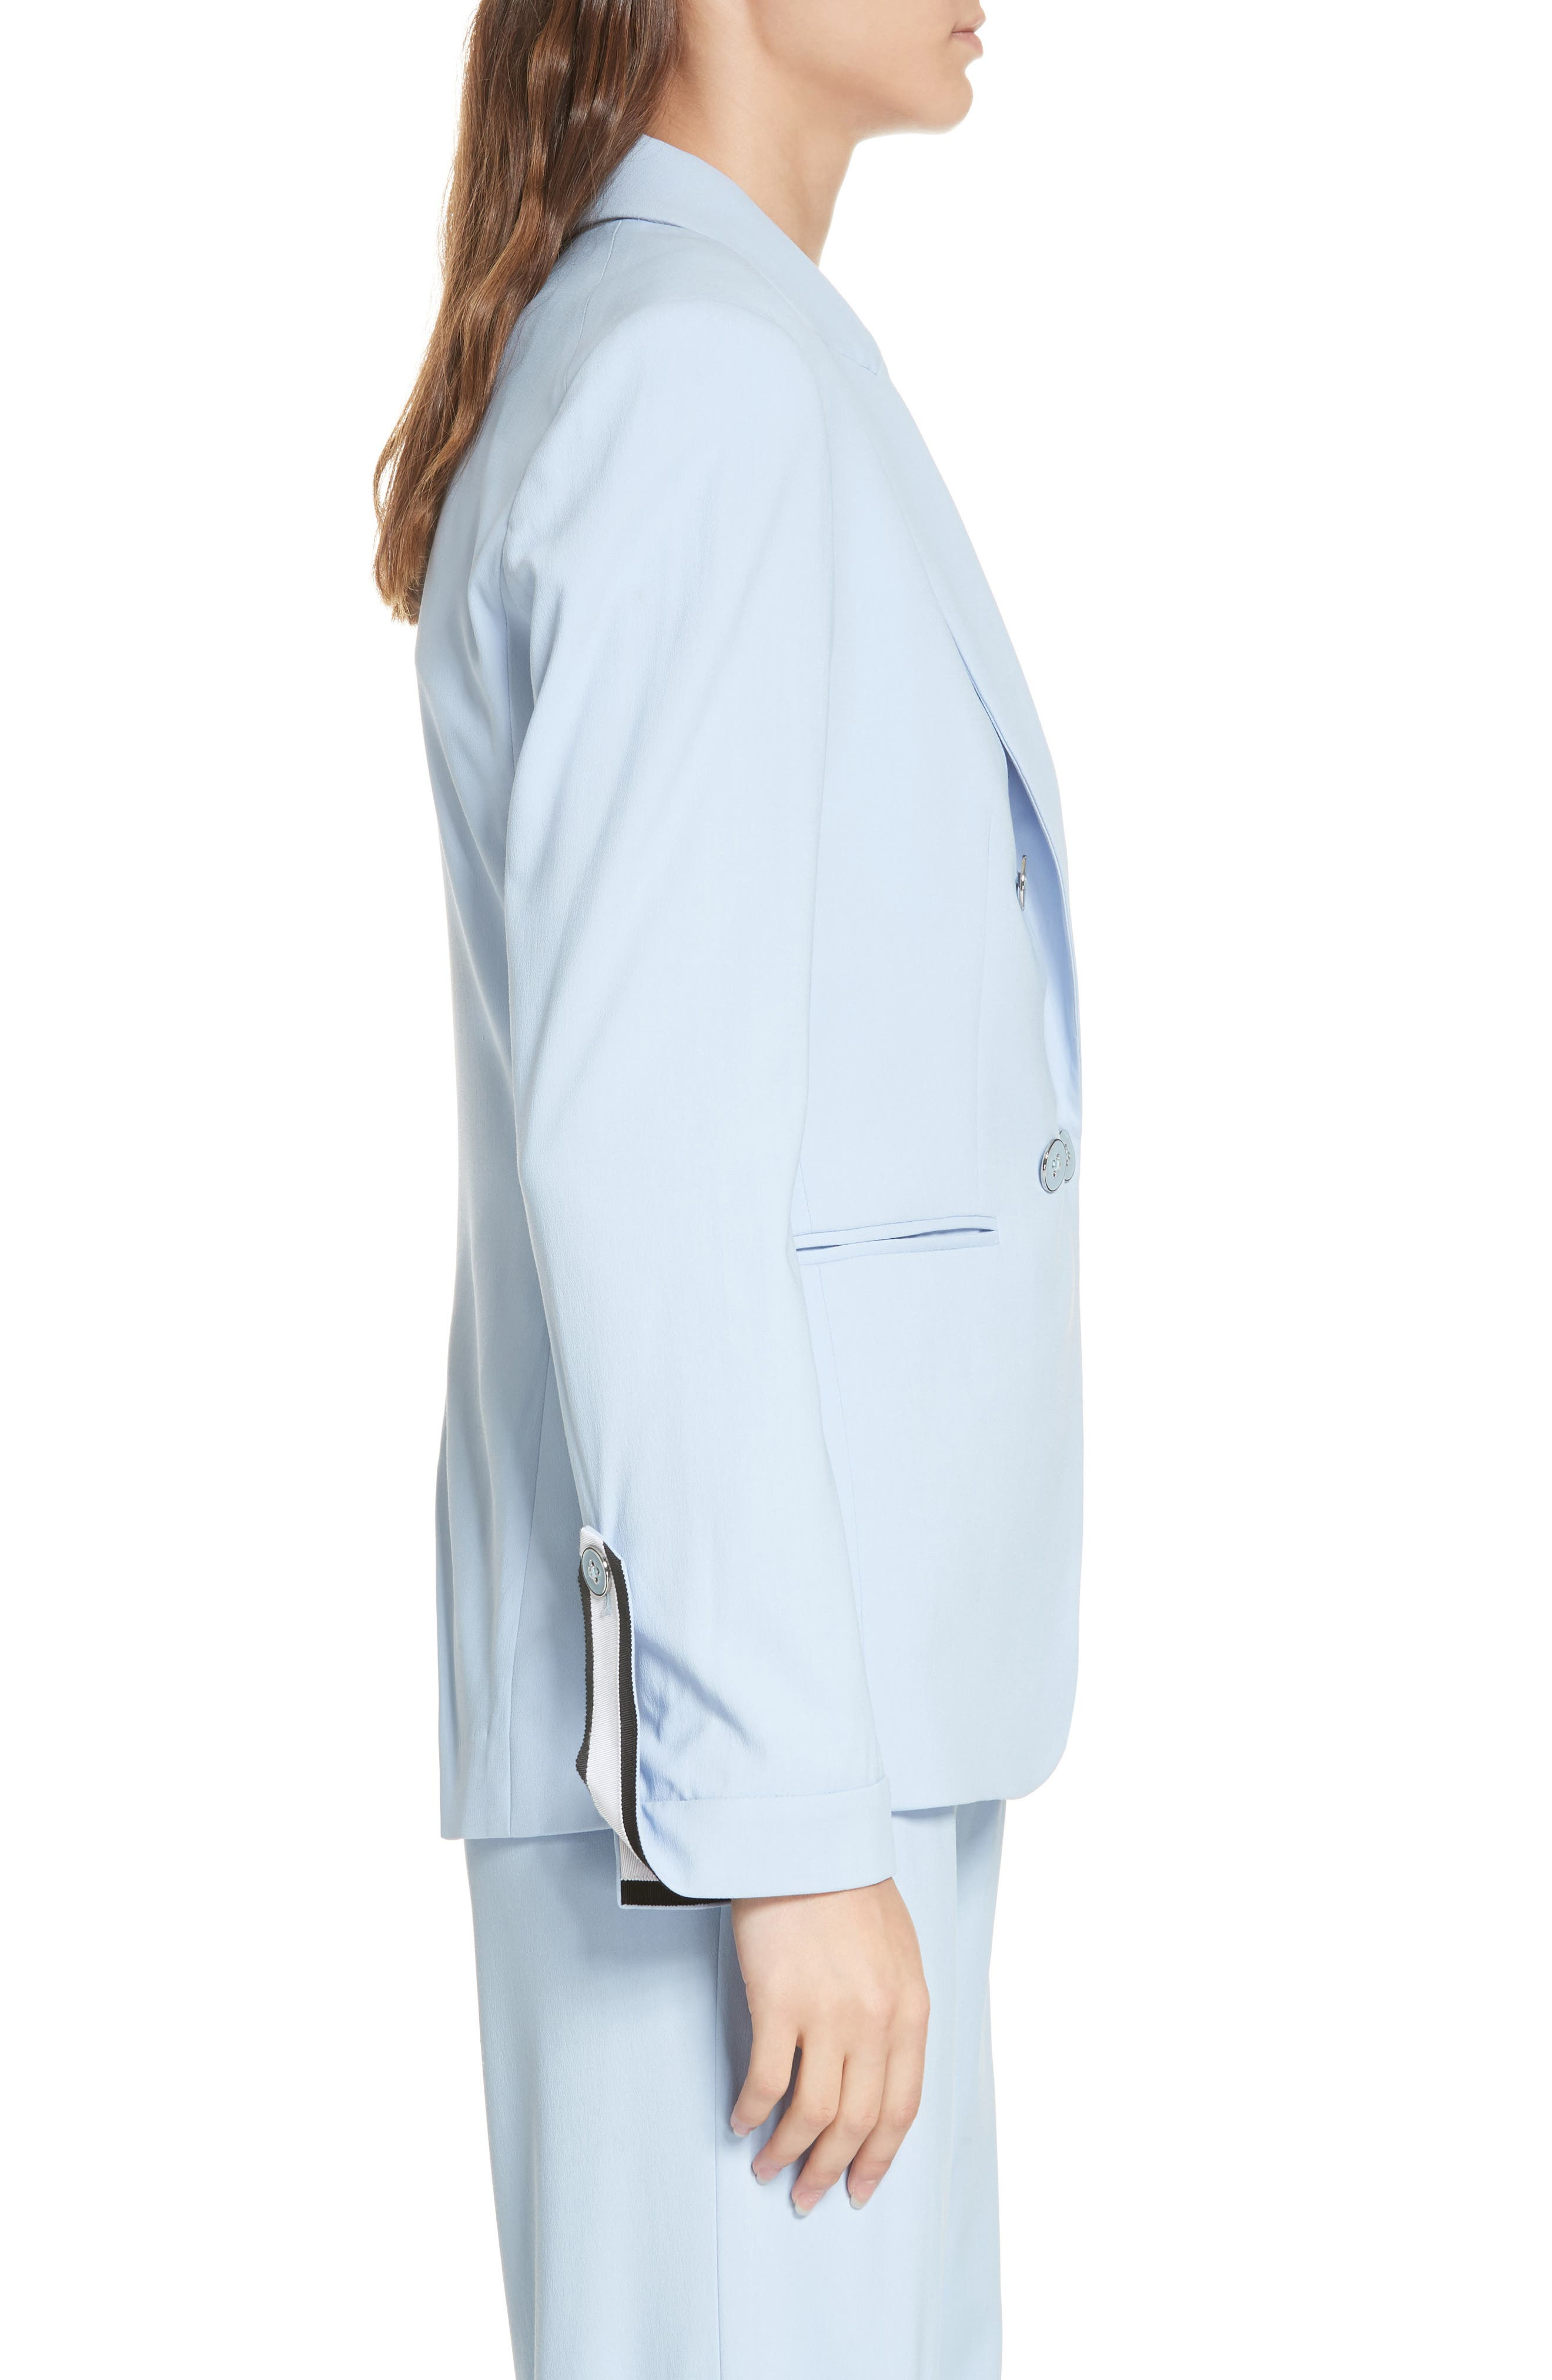 Aros Dickey Jacket,                             Alternate thumbnail 4, color,                             LIGHT BLUE